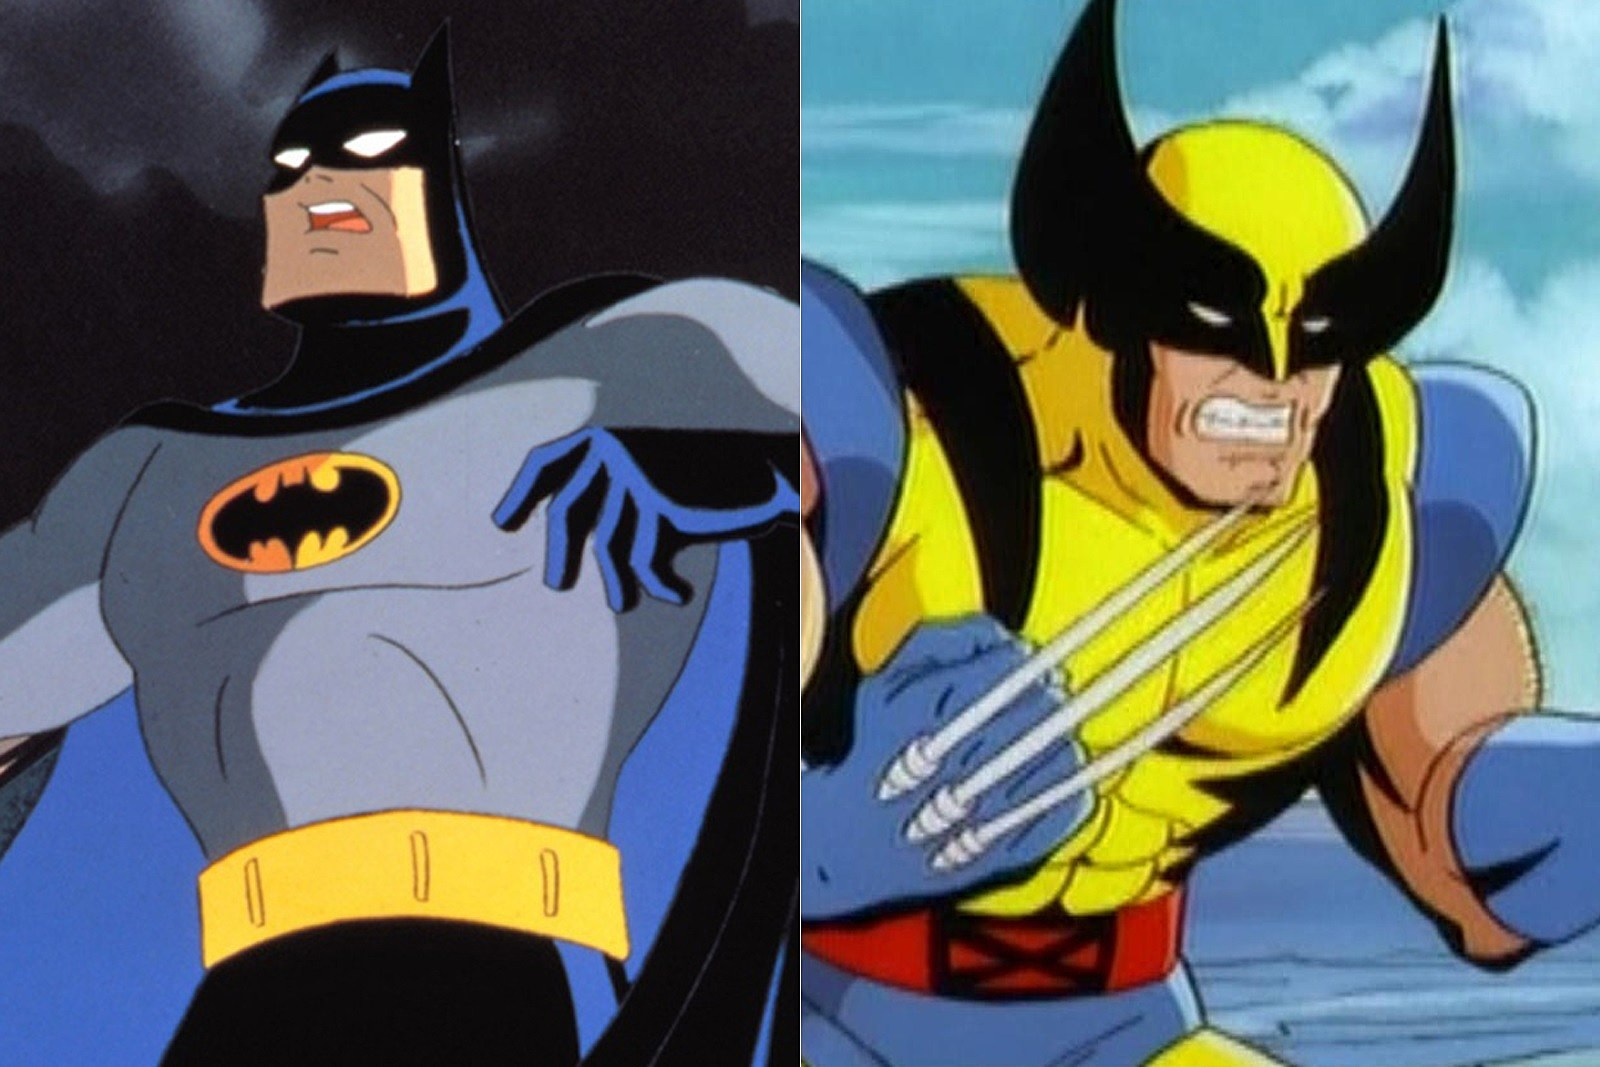 Batman from the Batman The Animated Series/DCAU. Wolverine from X-Men the Animated Series.